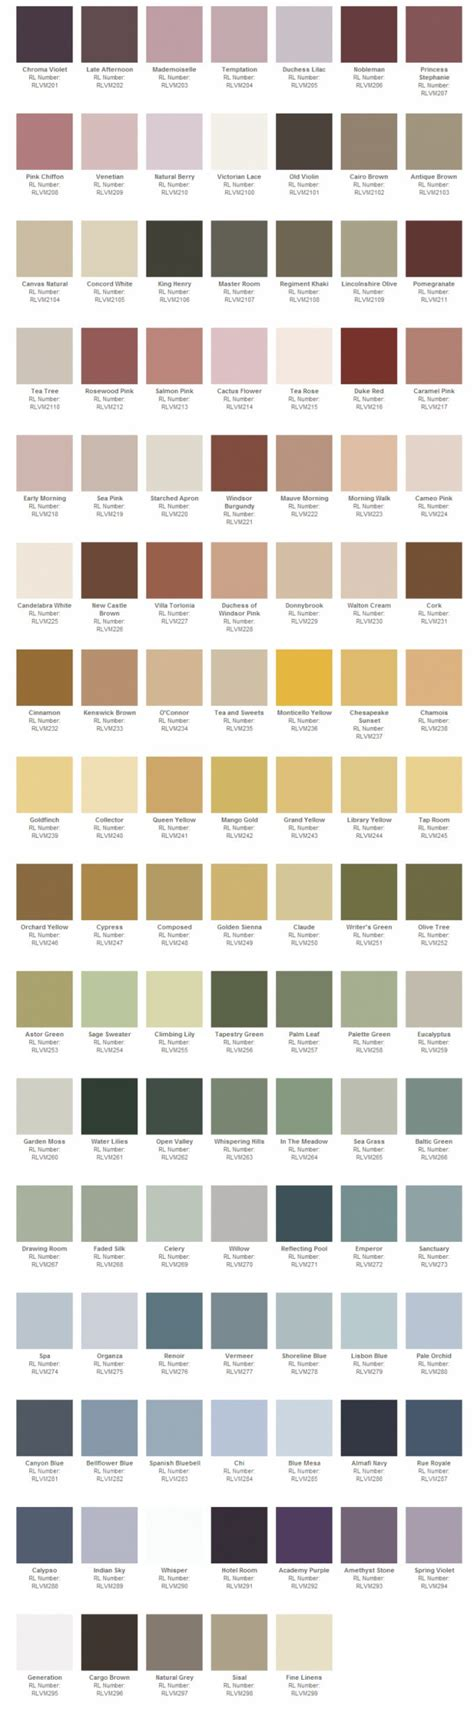 ralph metallic paint colors decorations enjoyable ralph paint colors chart for